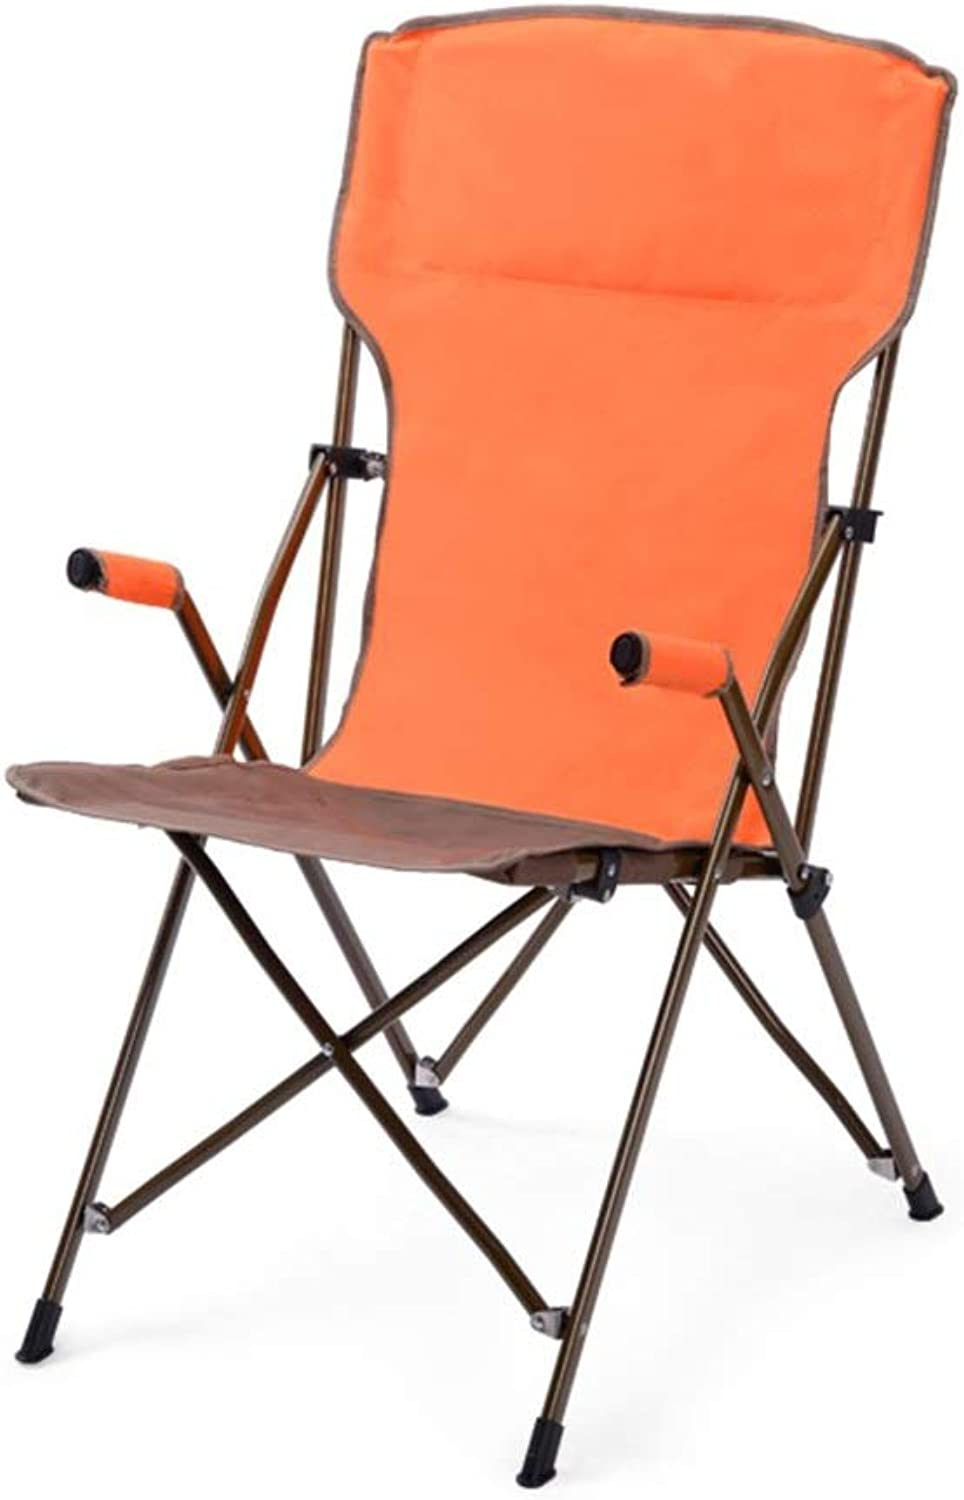 Klappstuhl Camping Stuhl Portable Outdoor Compact Ultraleicht Angeln Strand Wandern Picknick (Farbe   Orange)